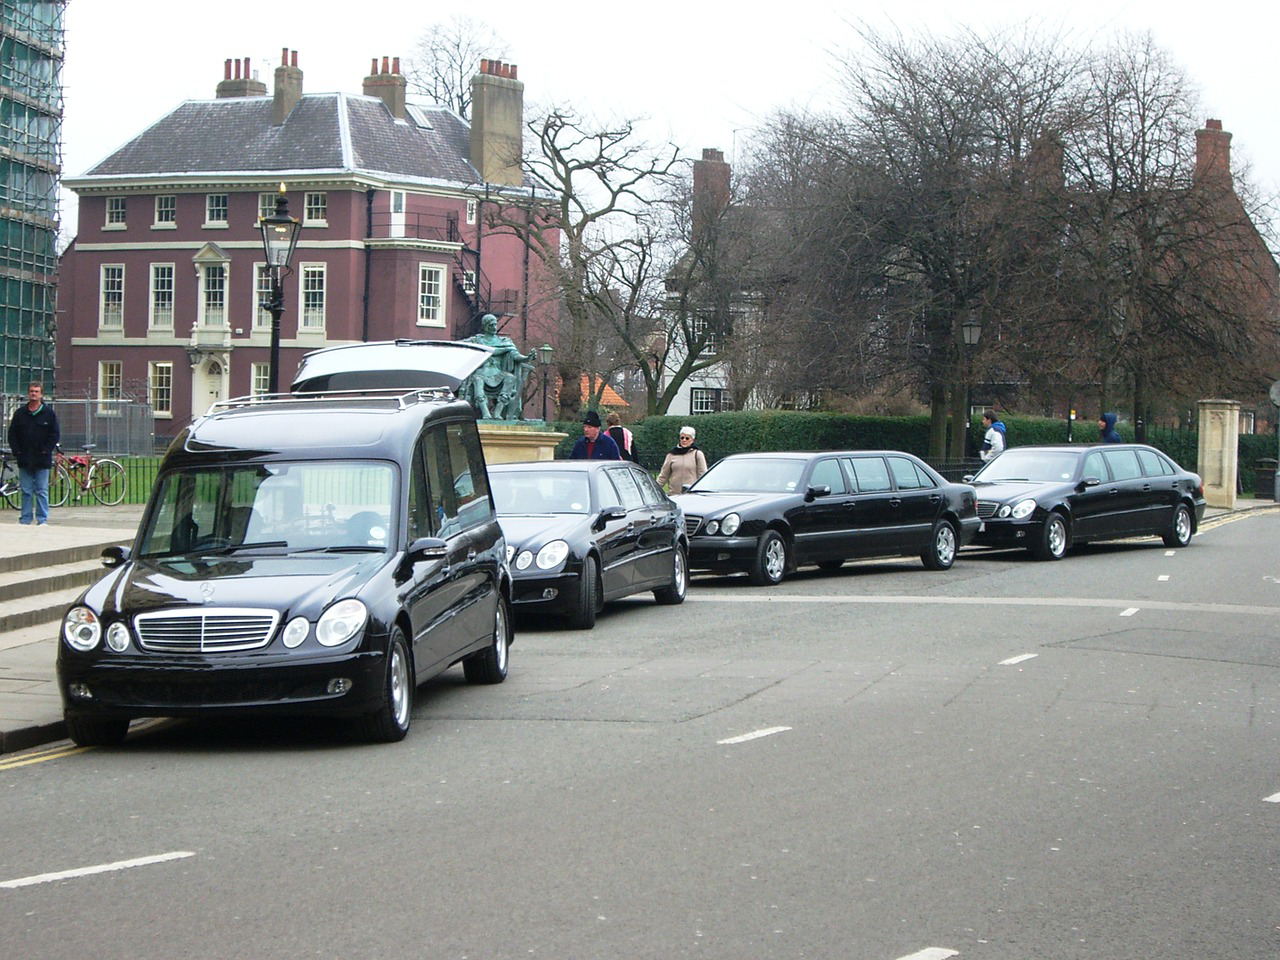 Funeral Procession Accidents Are Deadly